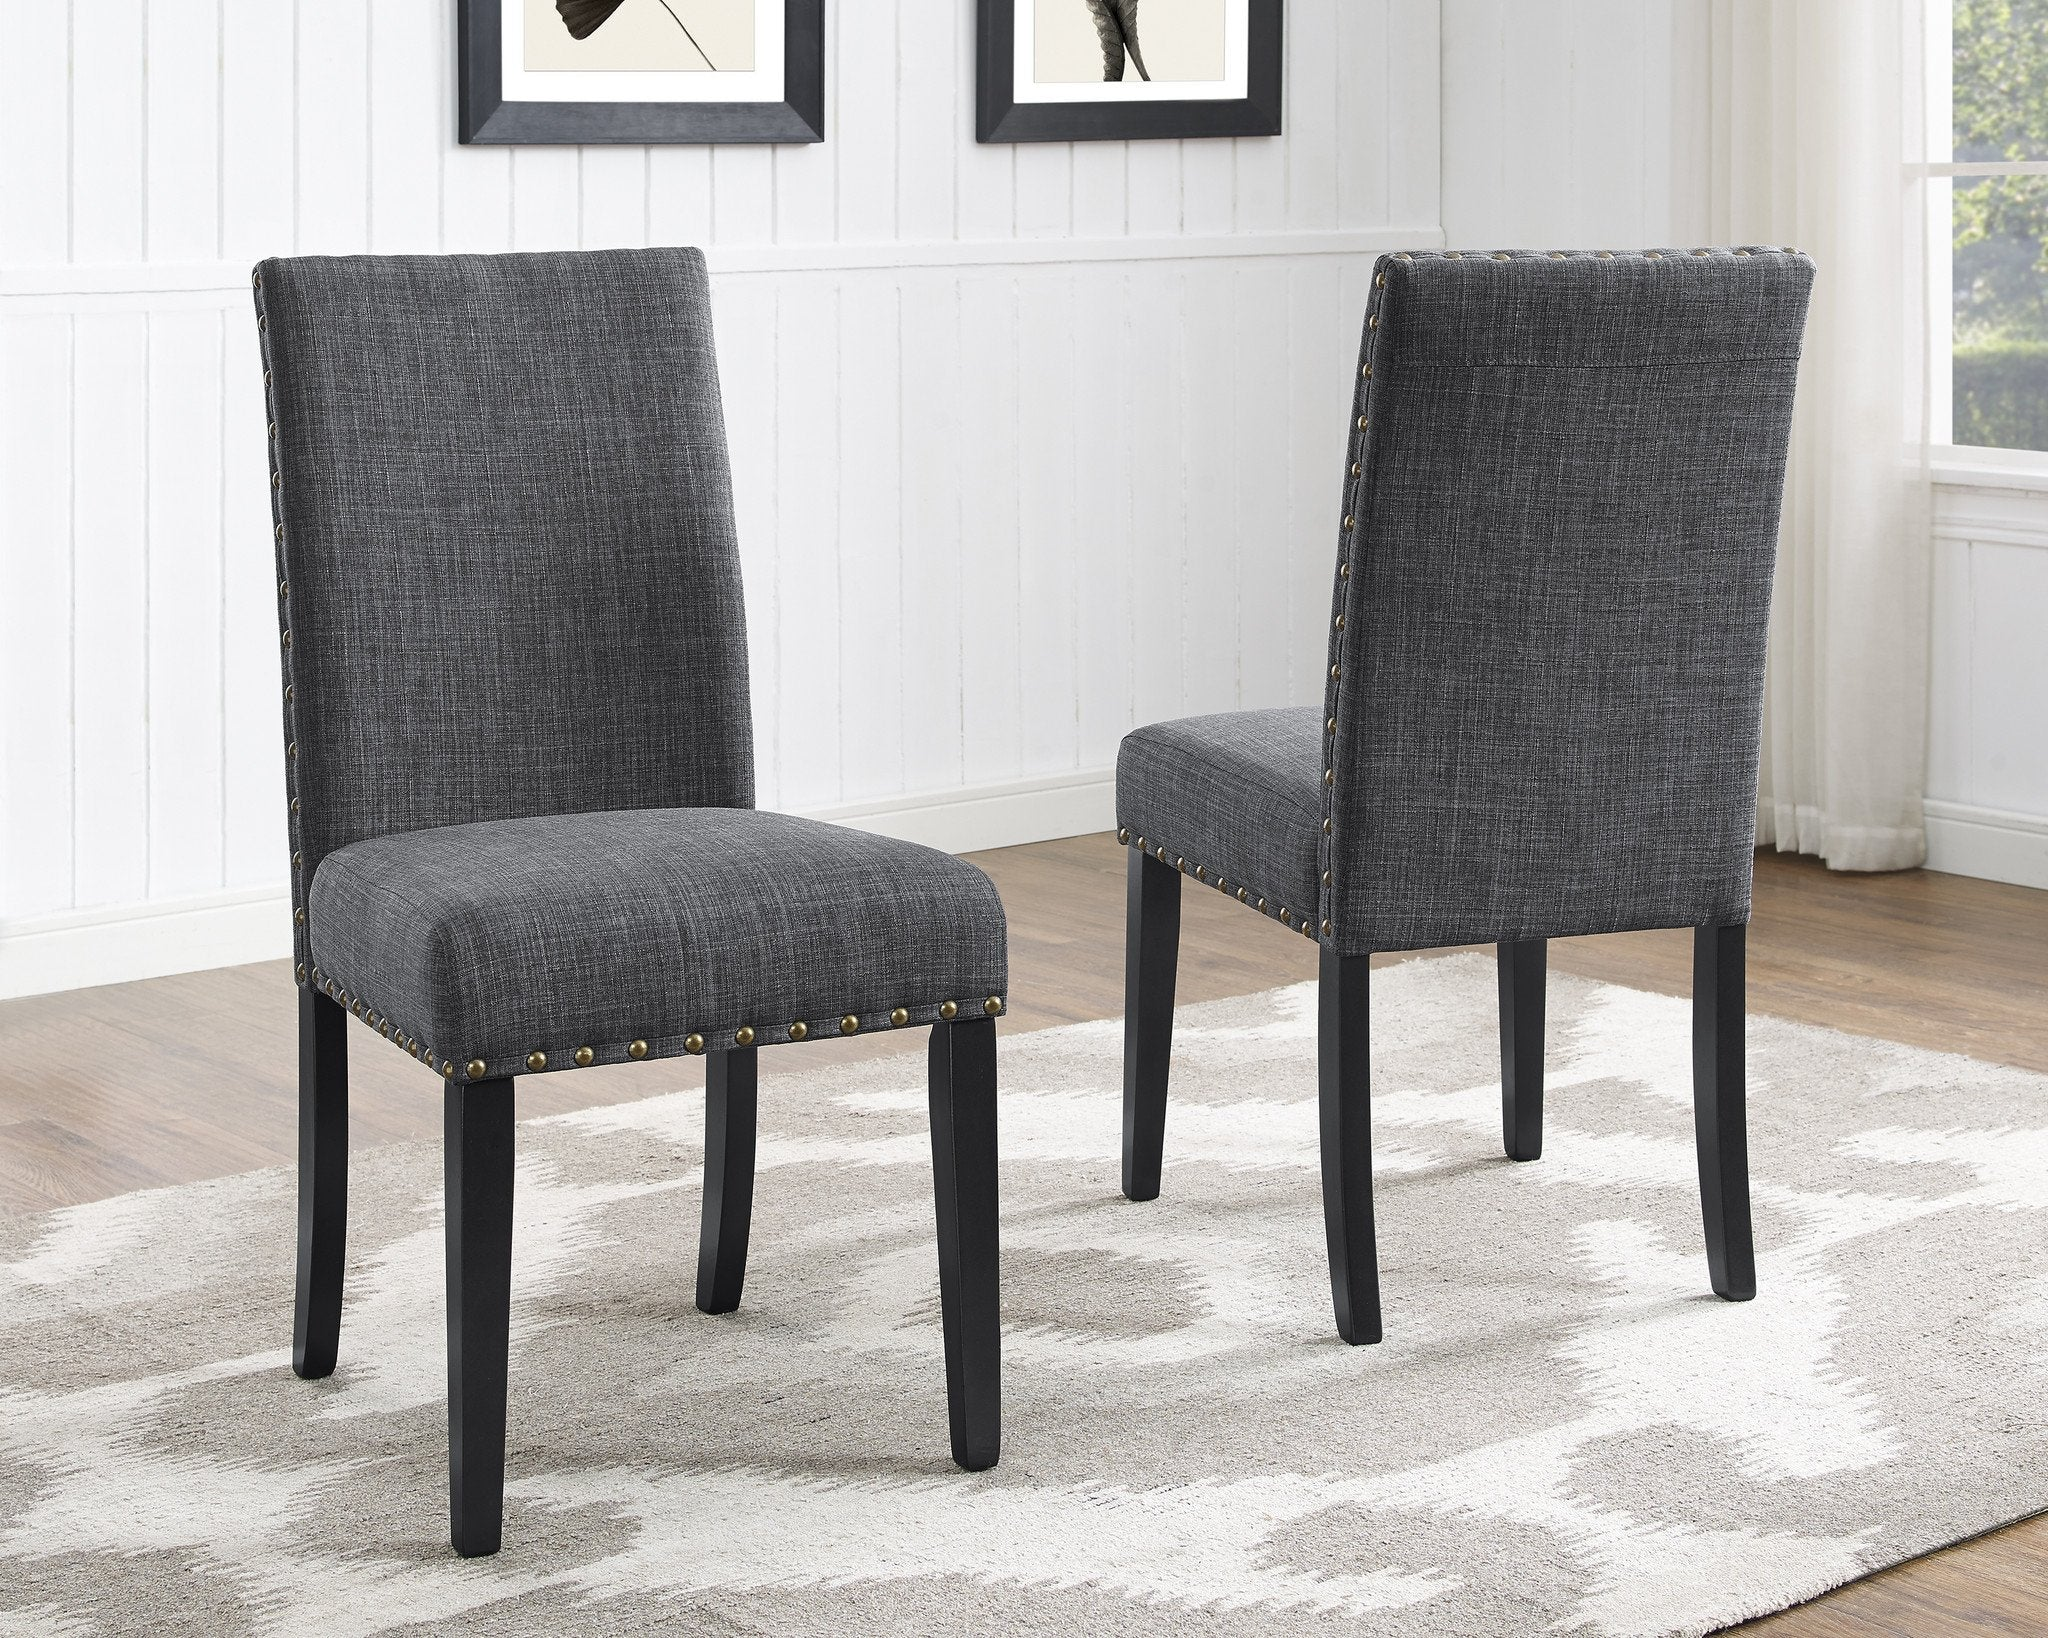 Biony Gray Fabric Dining Chairs with Nailhead Trim, Set of 2